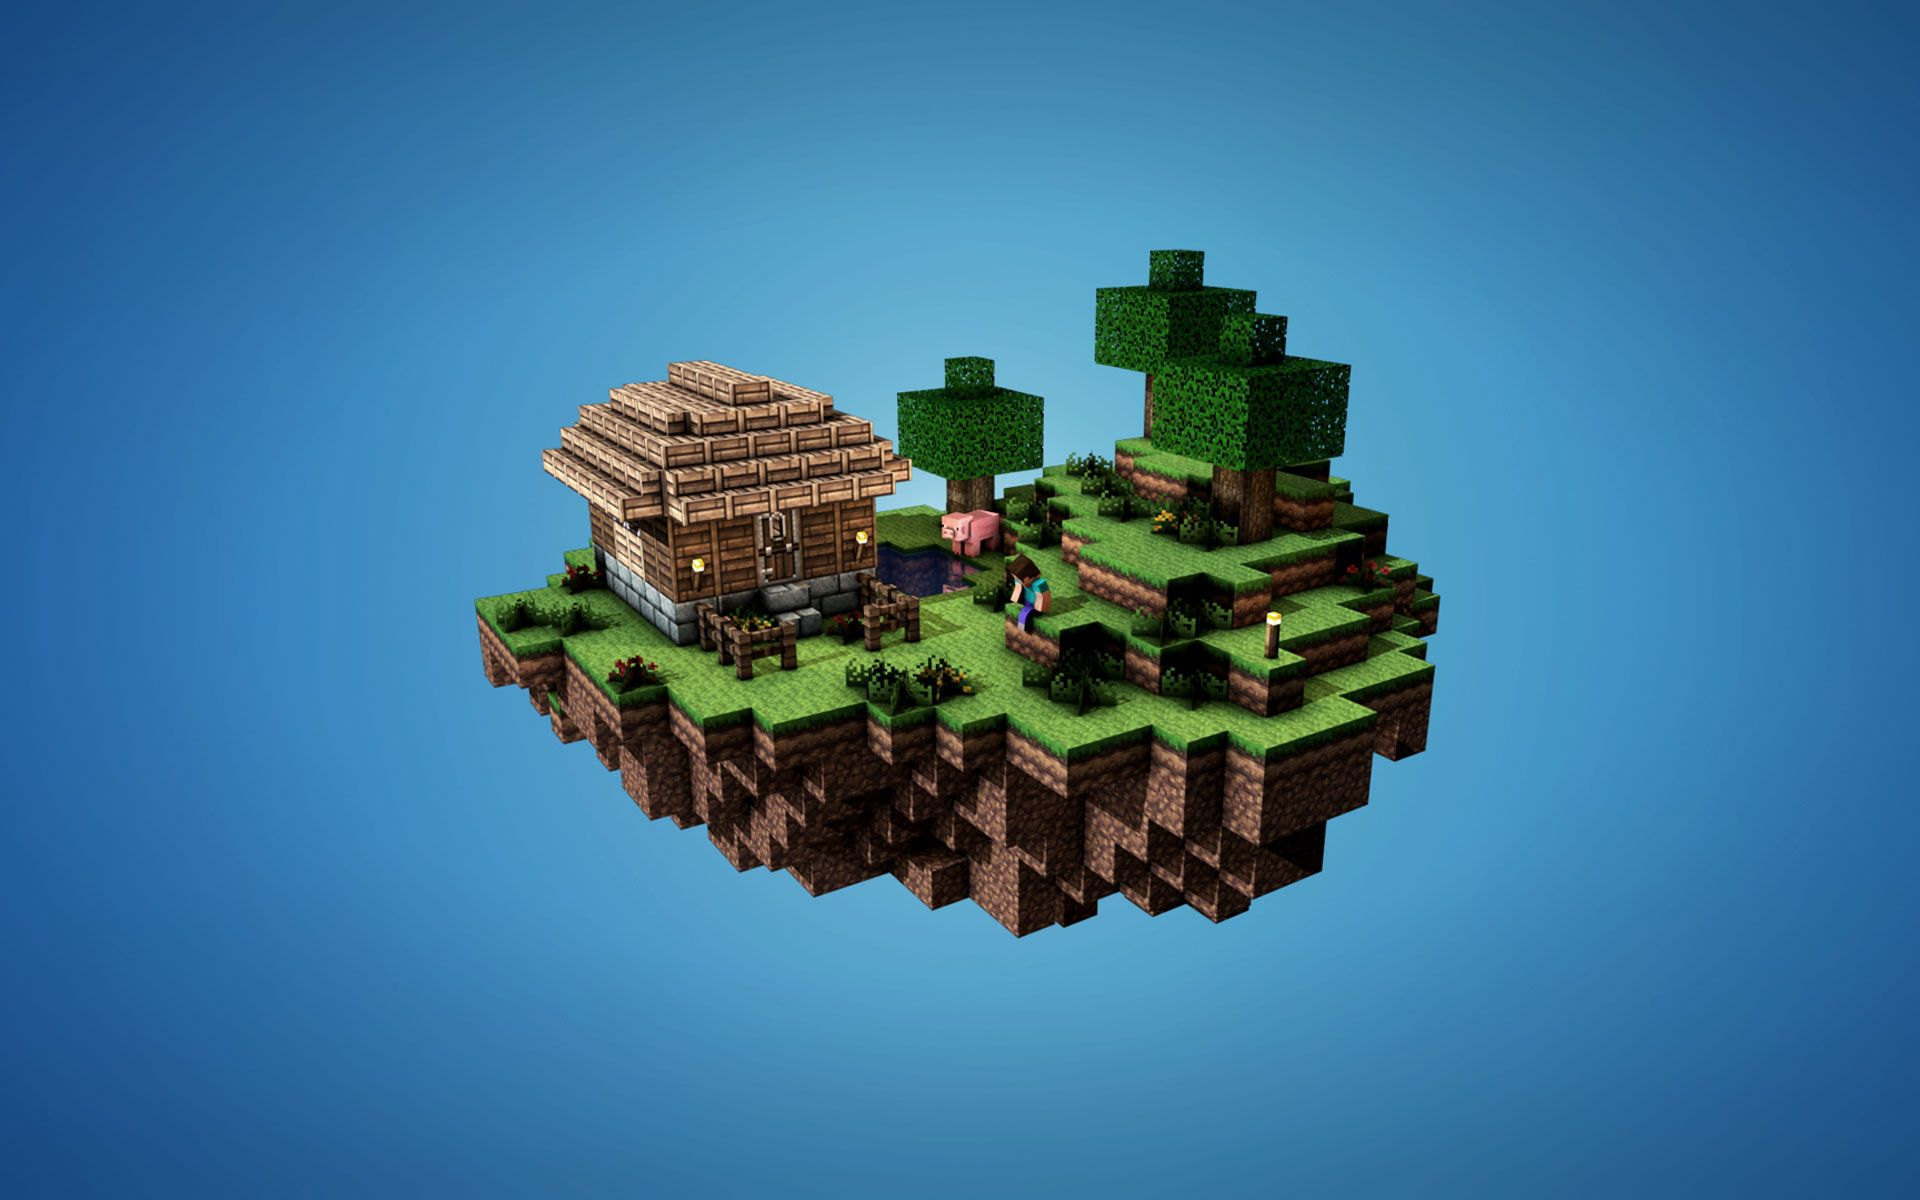 Minecraft Backgrounds For Your Computer 1920x1200